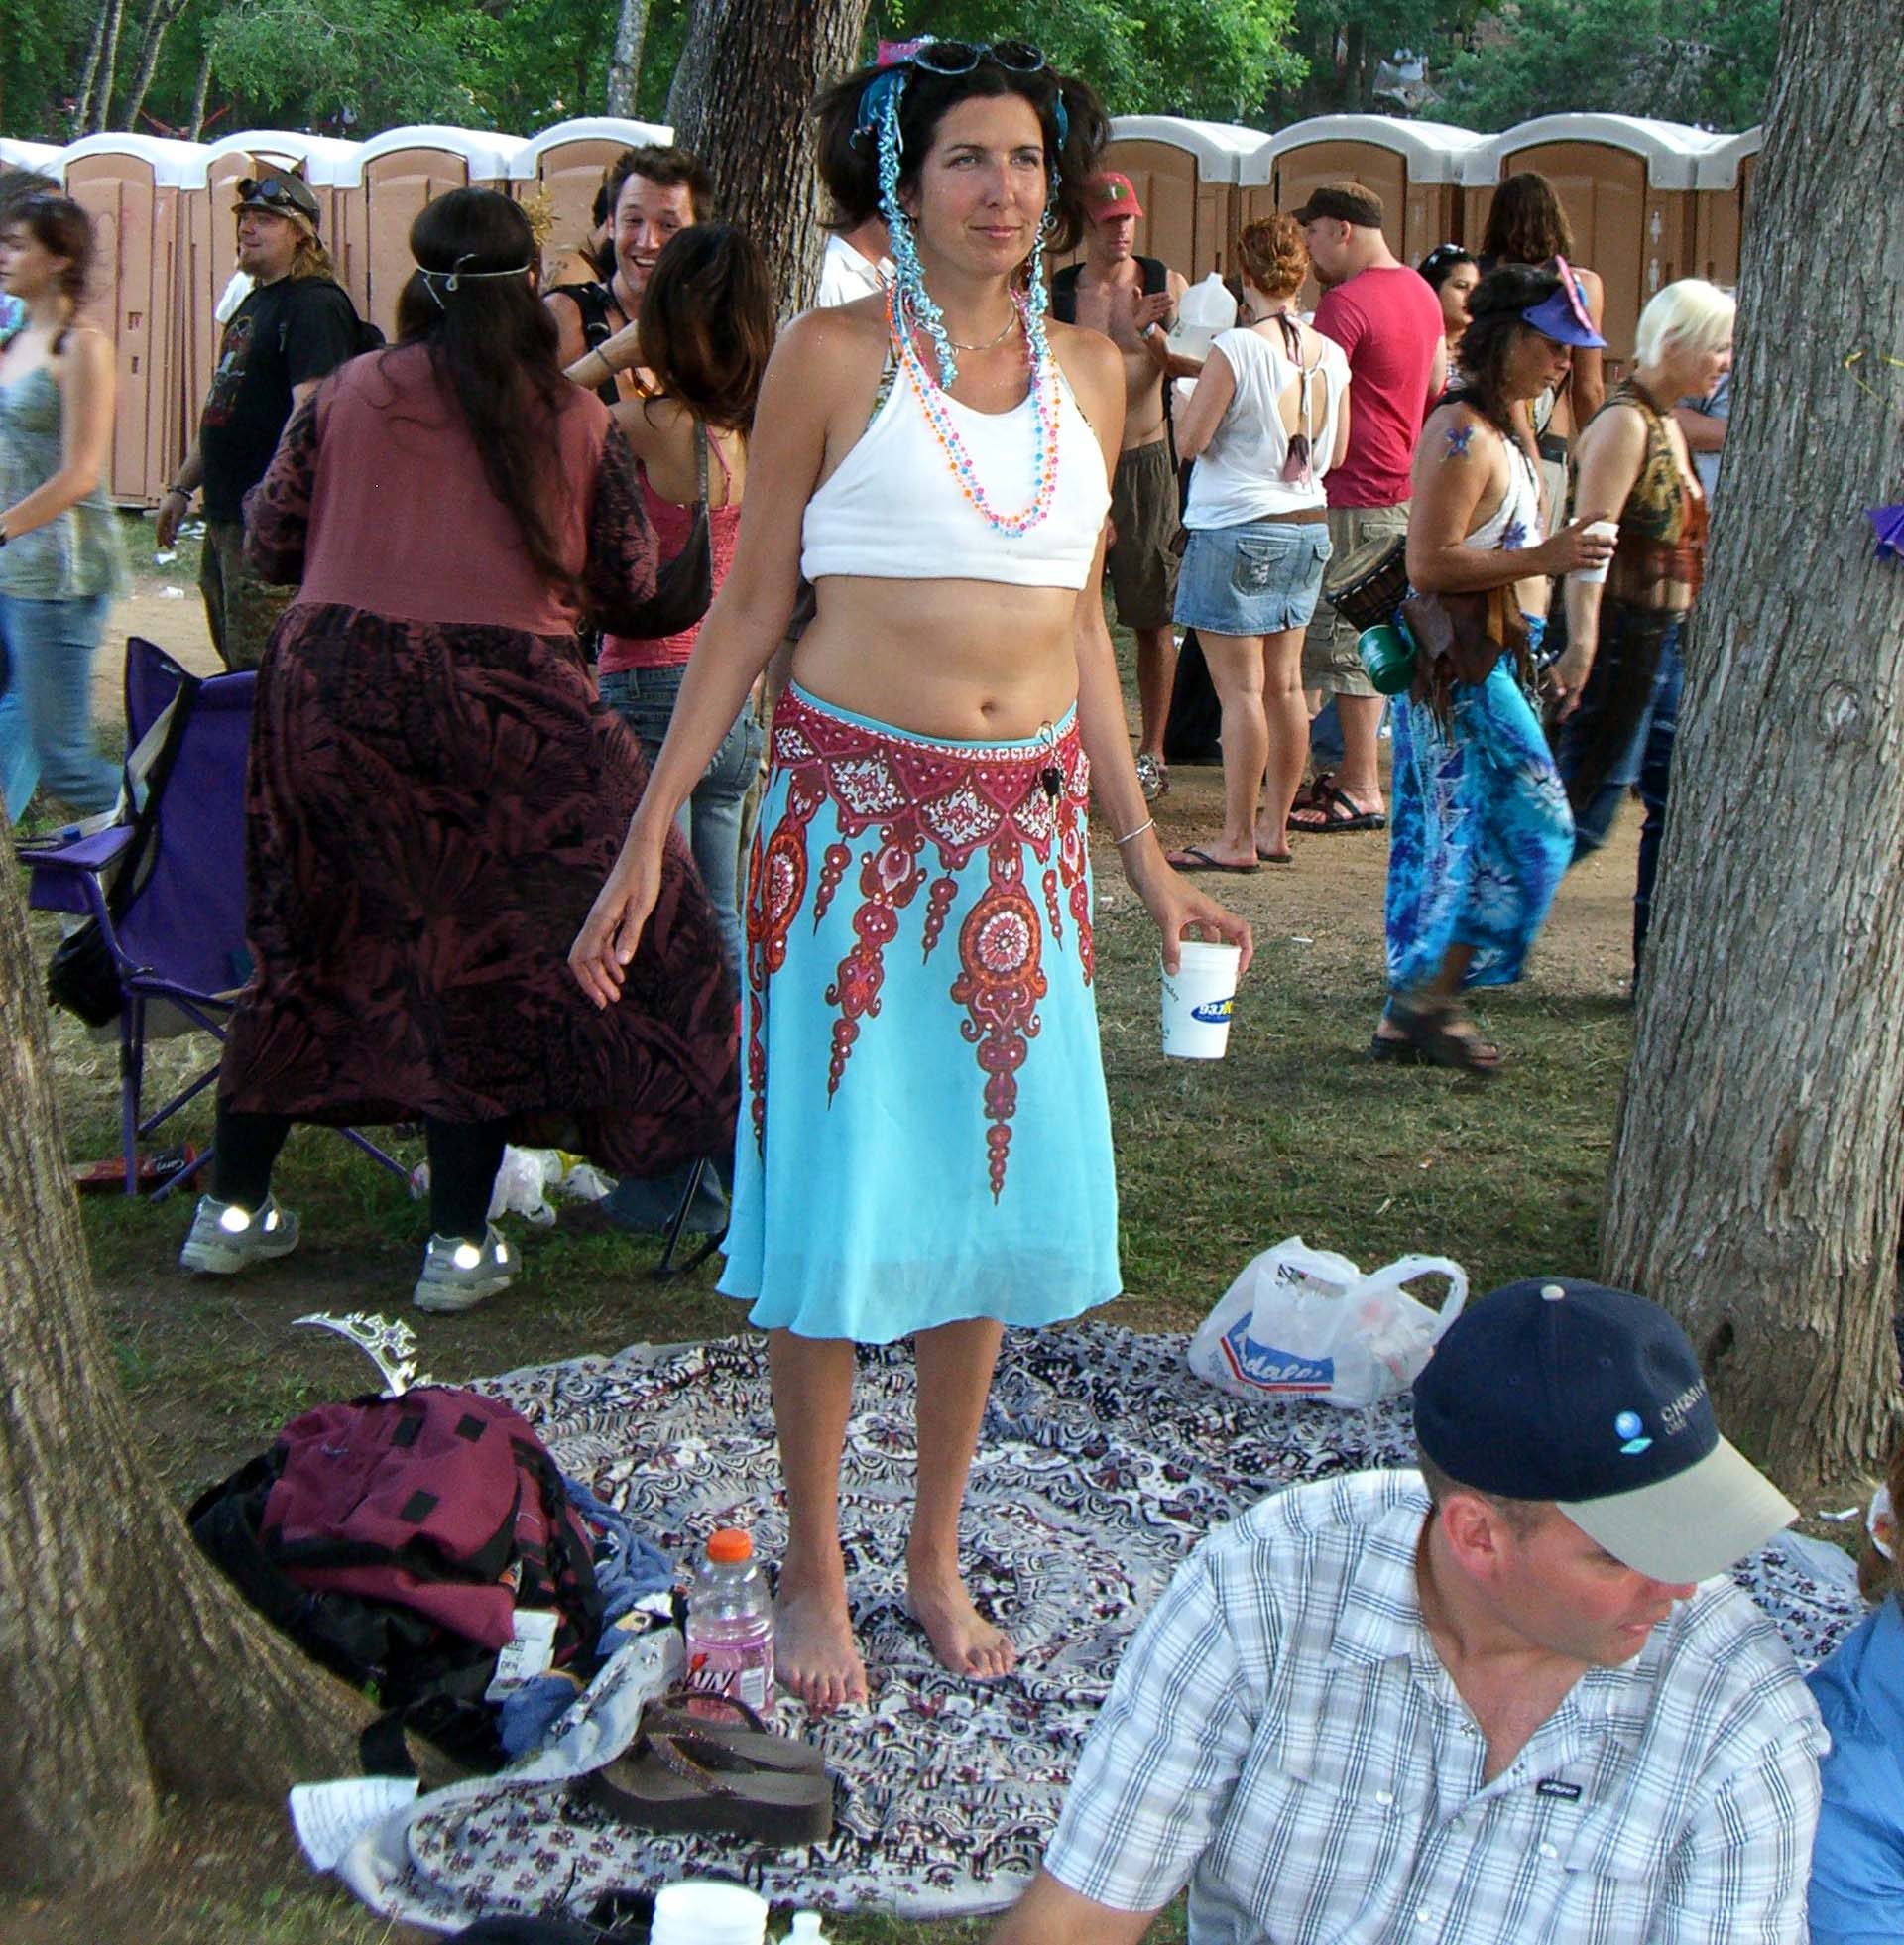 A henna-patterned skirt and an interesting headdress at Eeyore's Birthday 2007